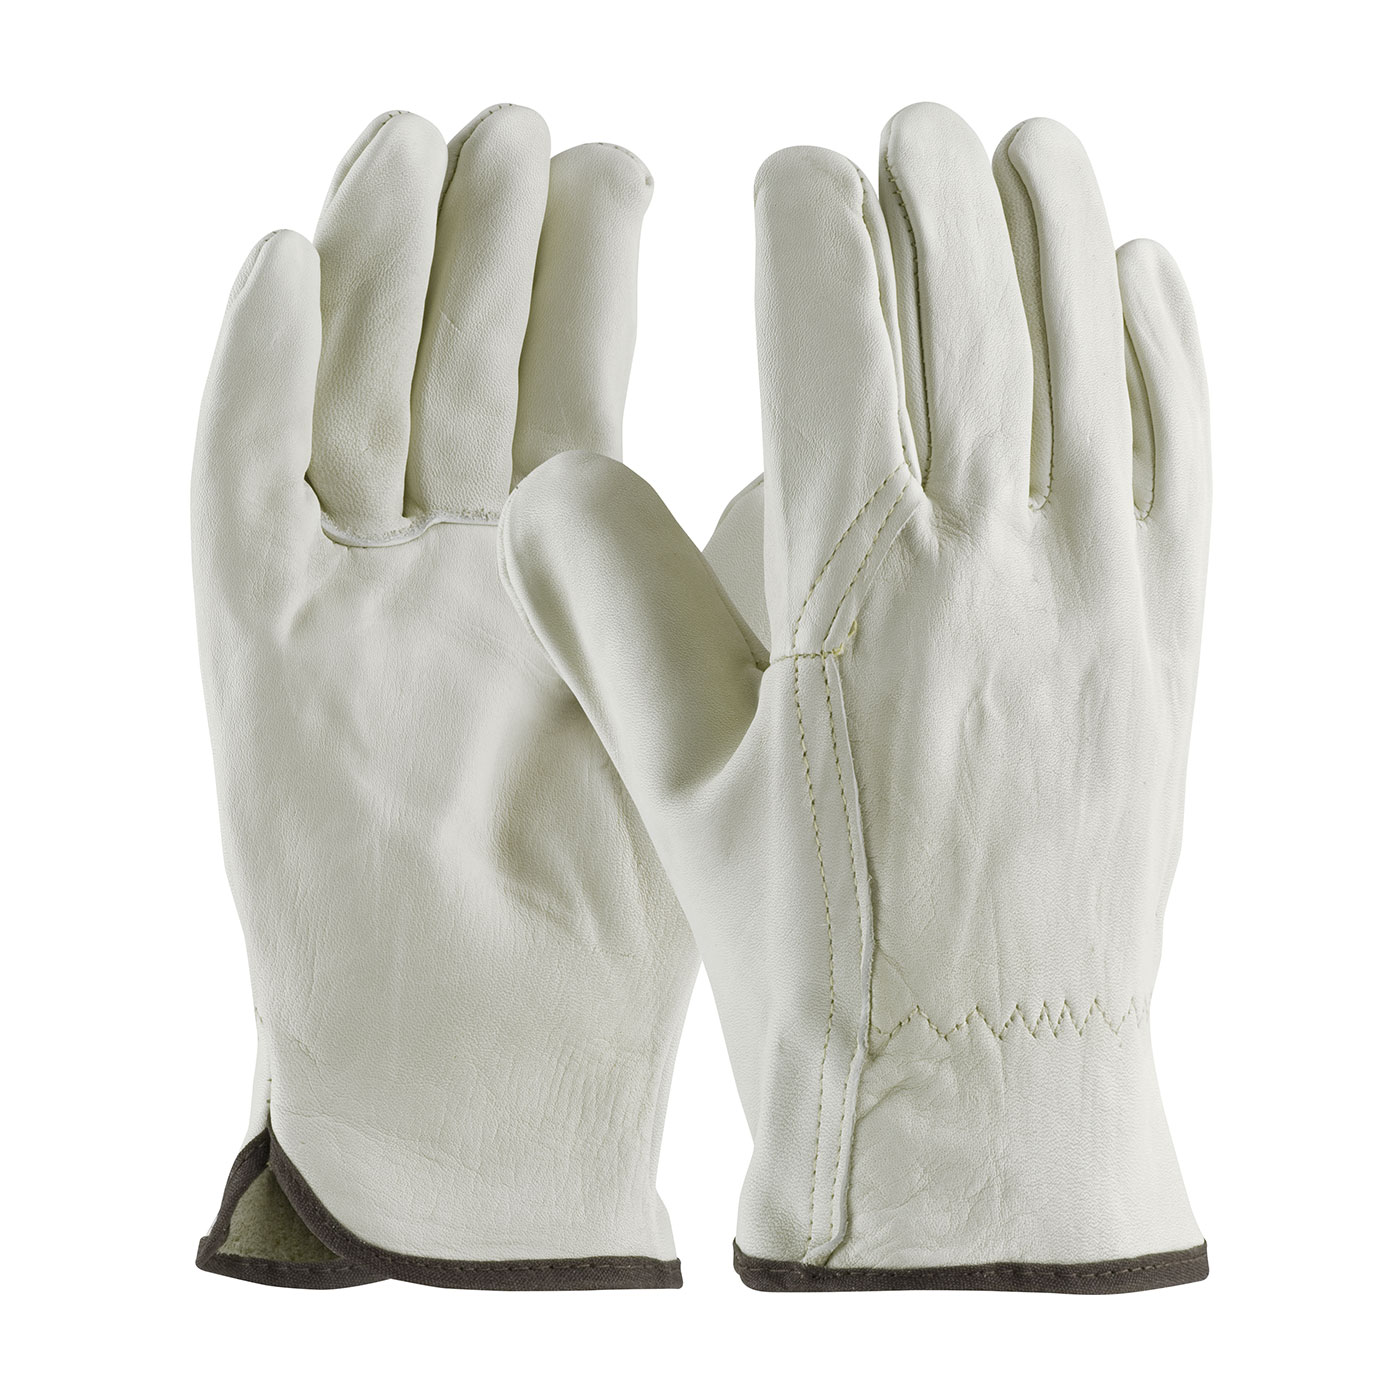 68-116 PIP® Superior-Grade Top Grain Cowhide Leather Drivers Glove w/ Wing Thumb